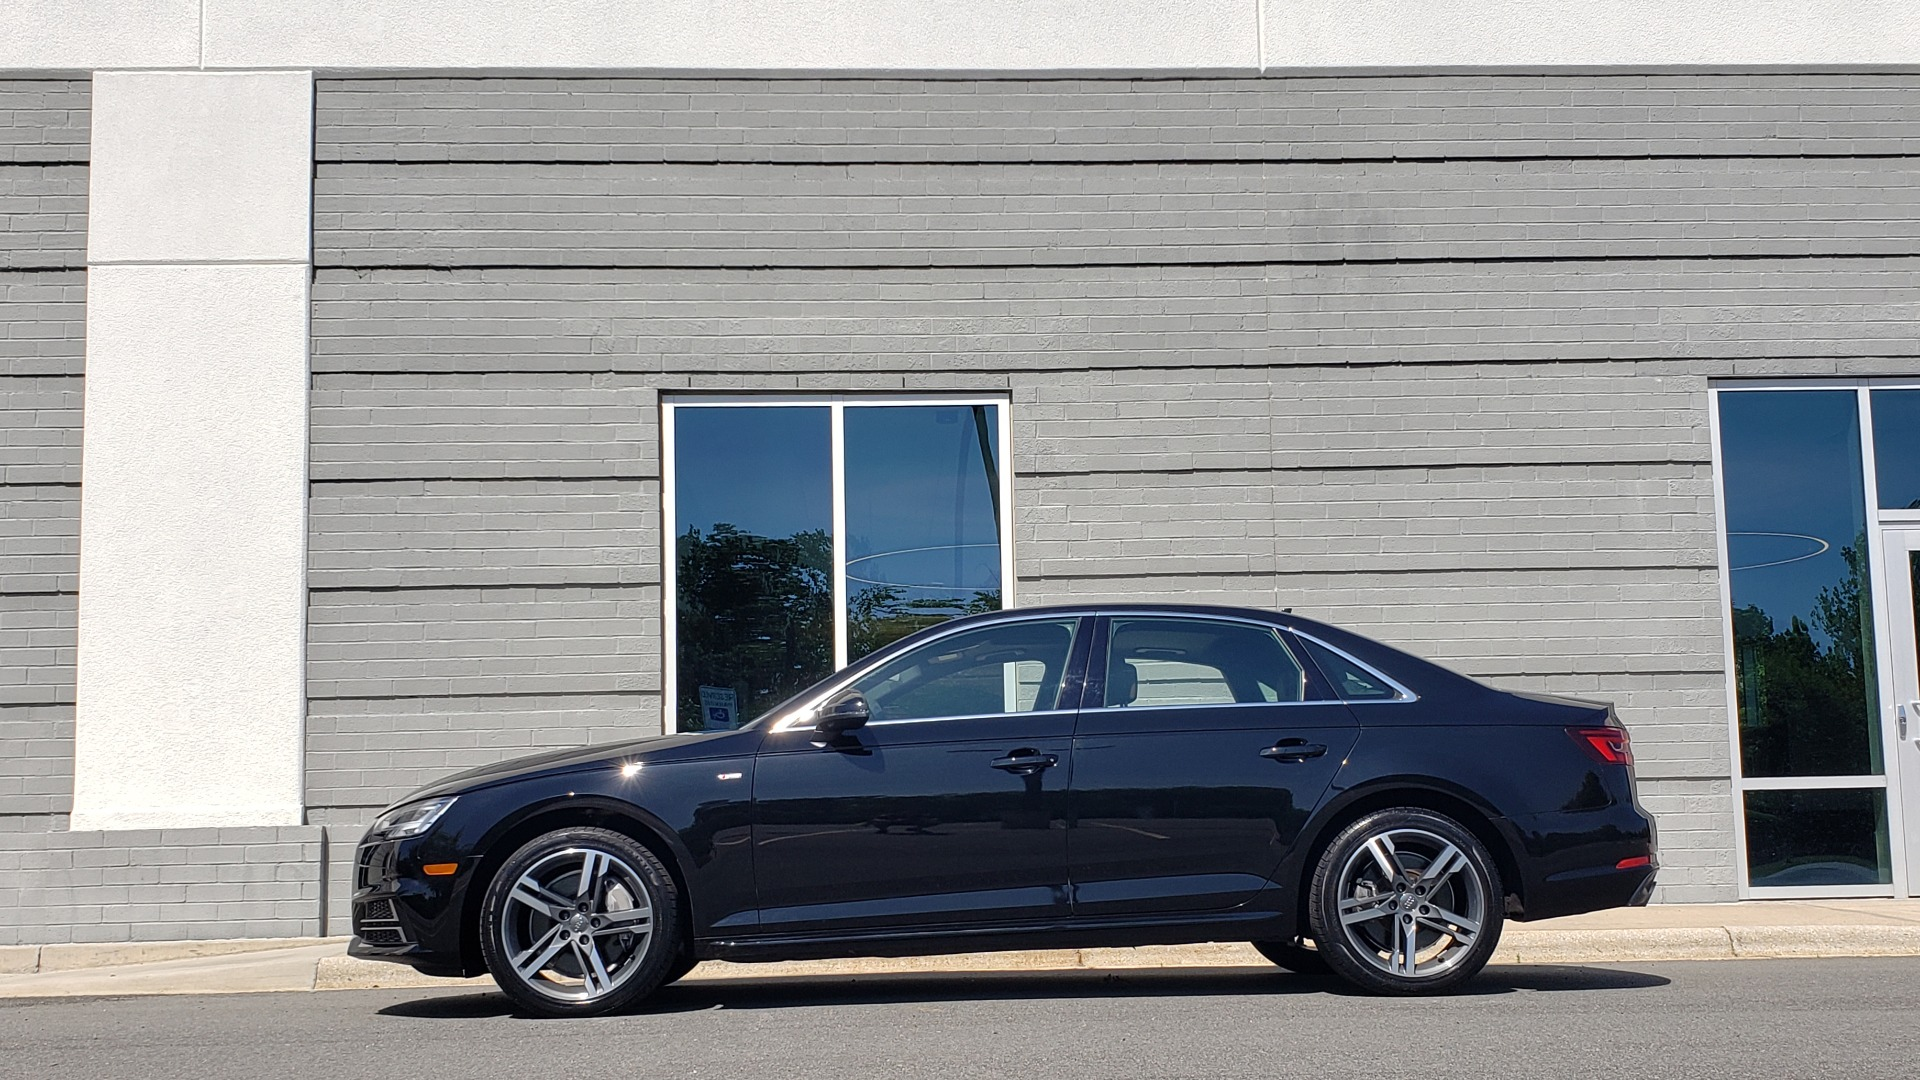 Used 2018 Audi A4 PREMIUM PLUS 2.0T / NAV / SUNROOF / B&O SND / CLD WTHR / REARVIEW for sale $30,695 at Formula Imports in Charlotte NC 28227 4